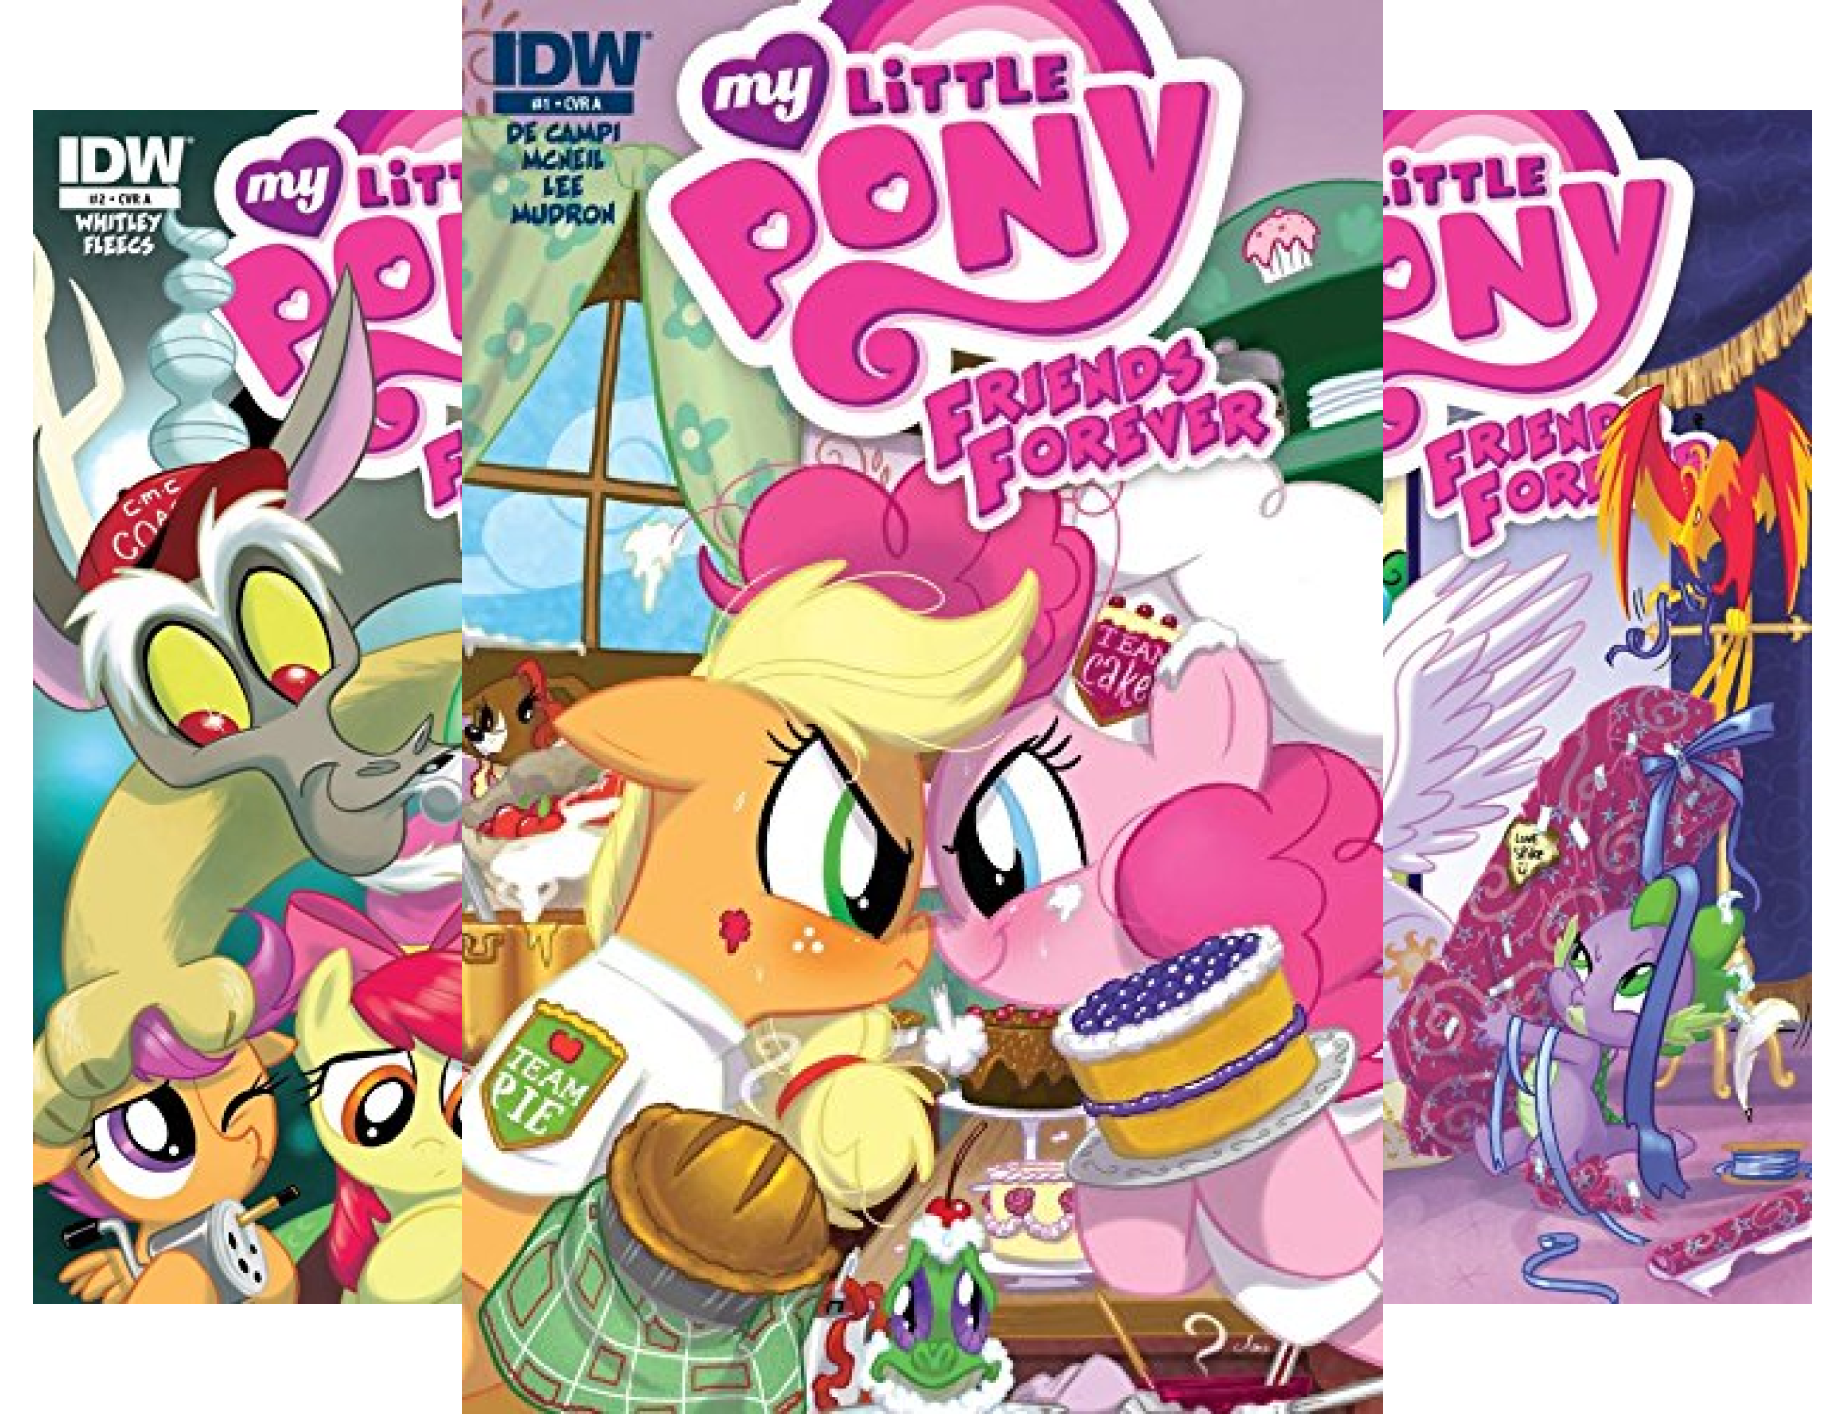 My Little Pony Friends Forever Graphic Novel (24 Book Series)